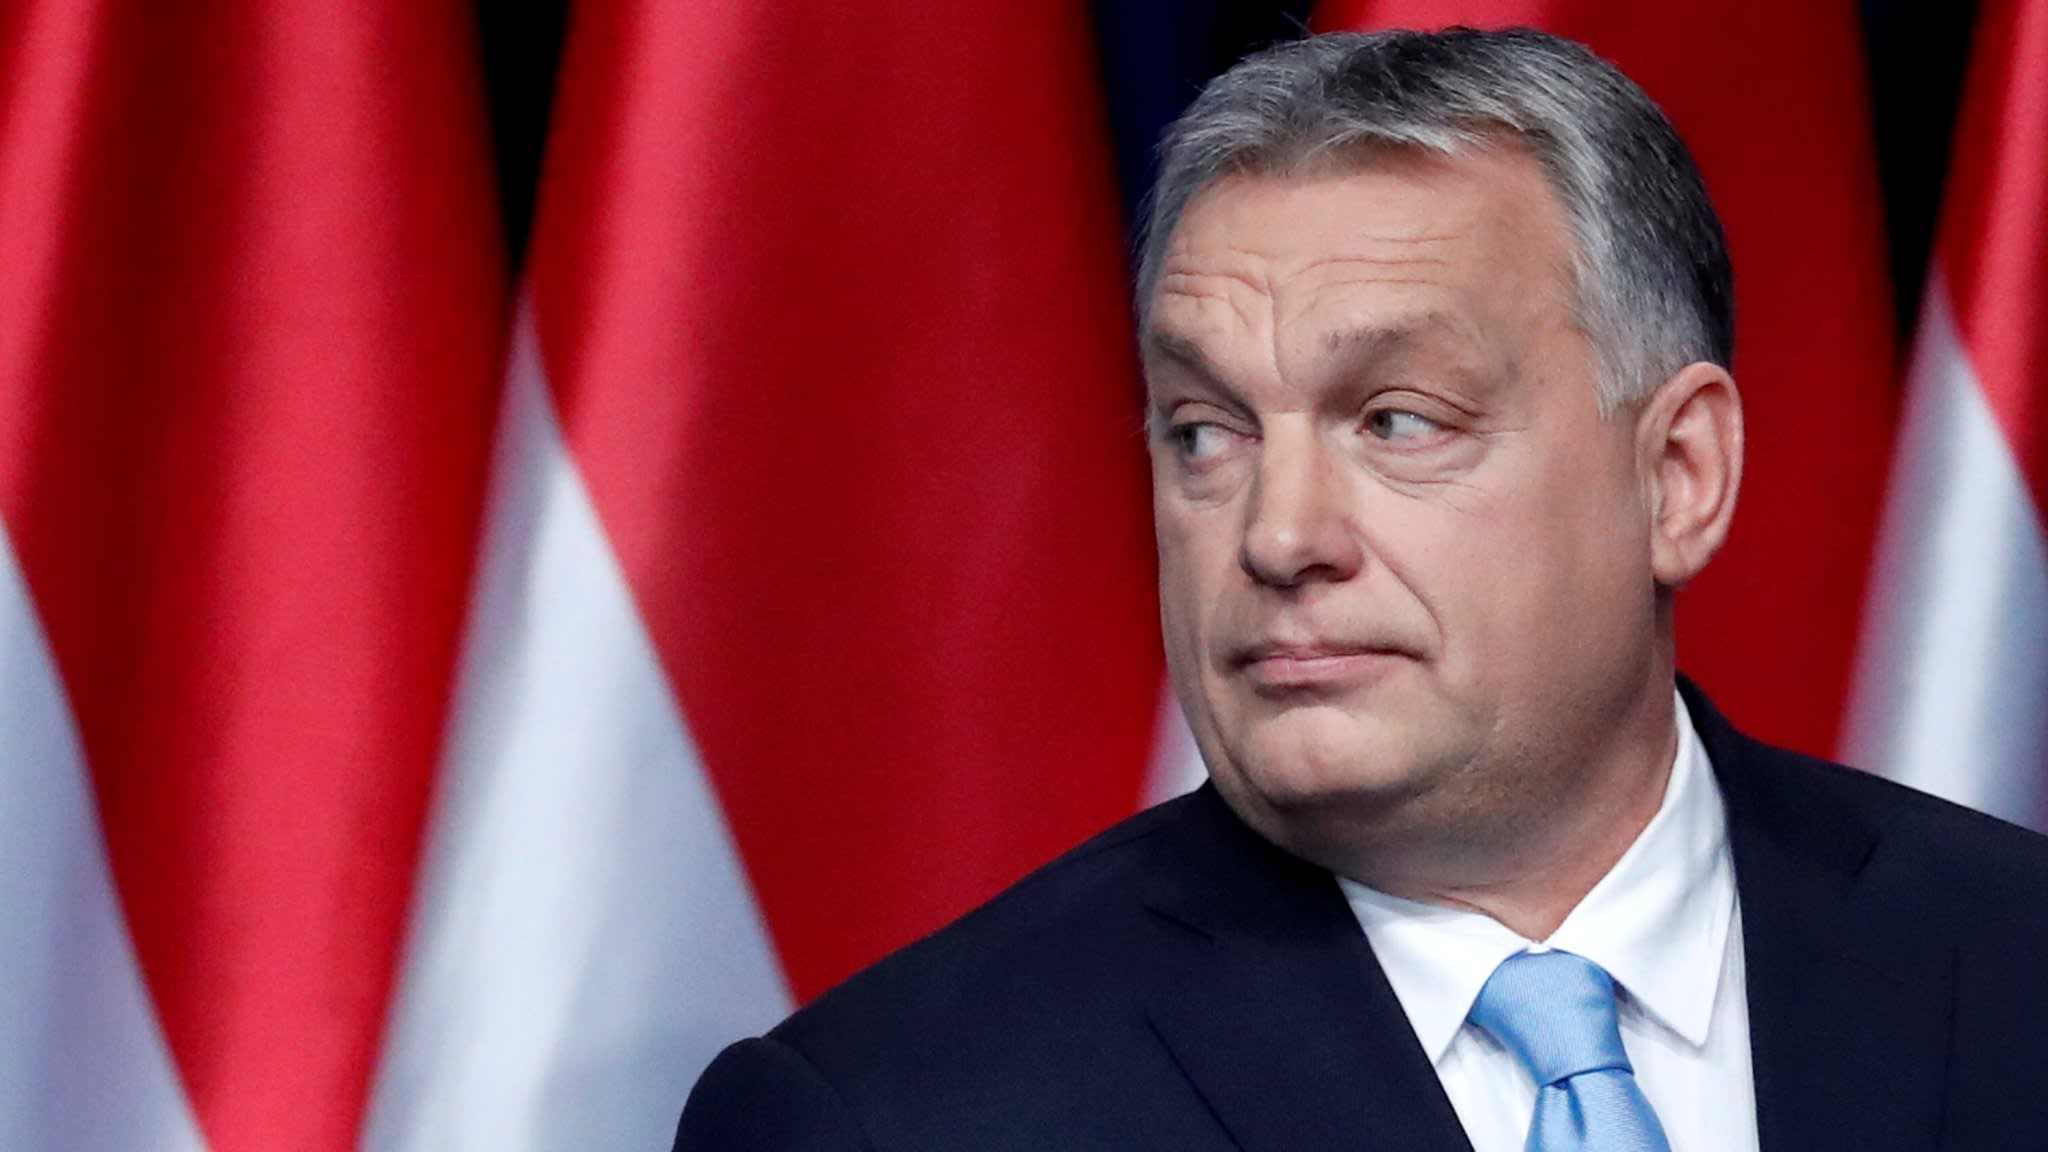 Suspension of Orban's party falls short of real punishment | Financial Times